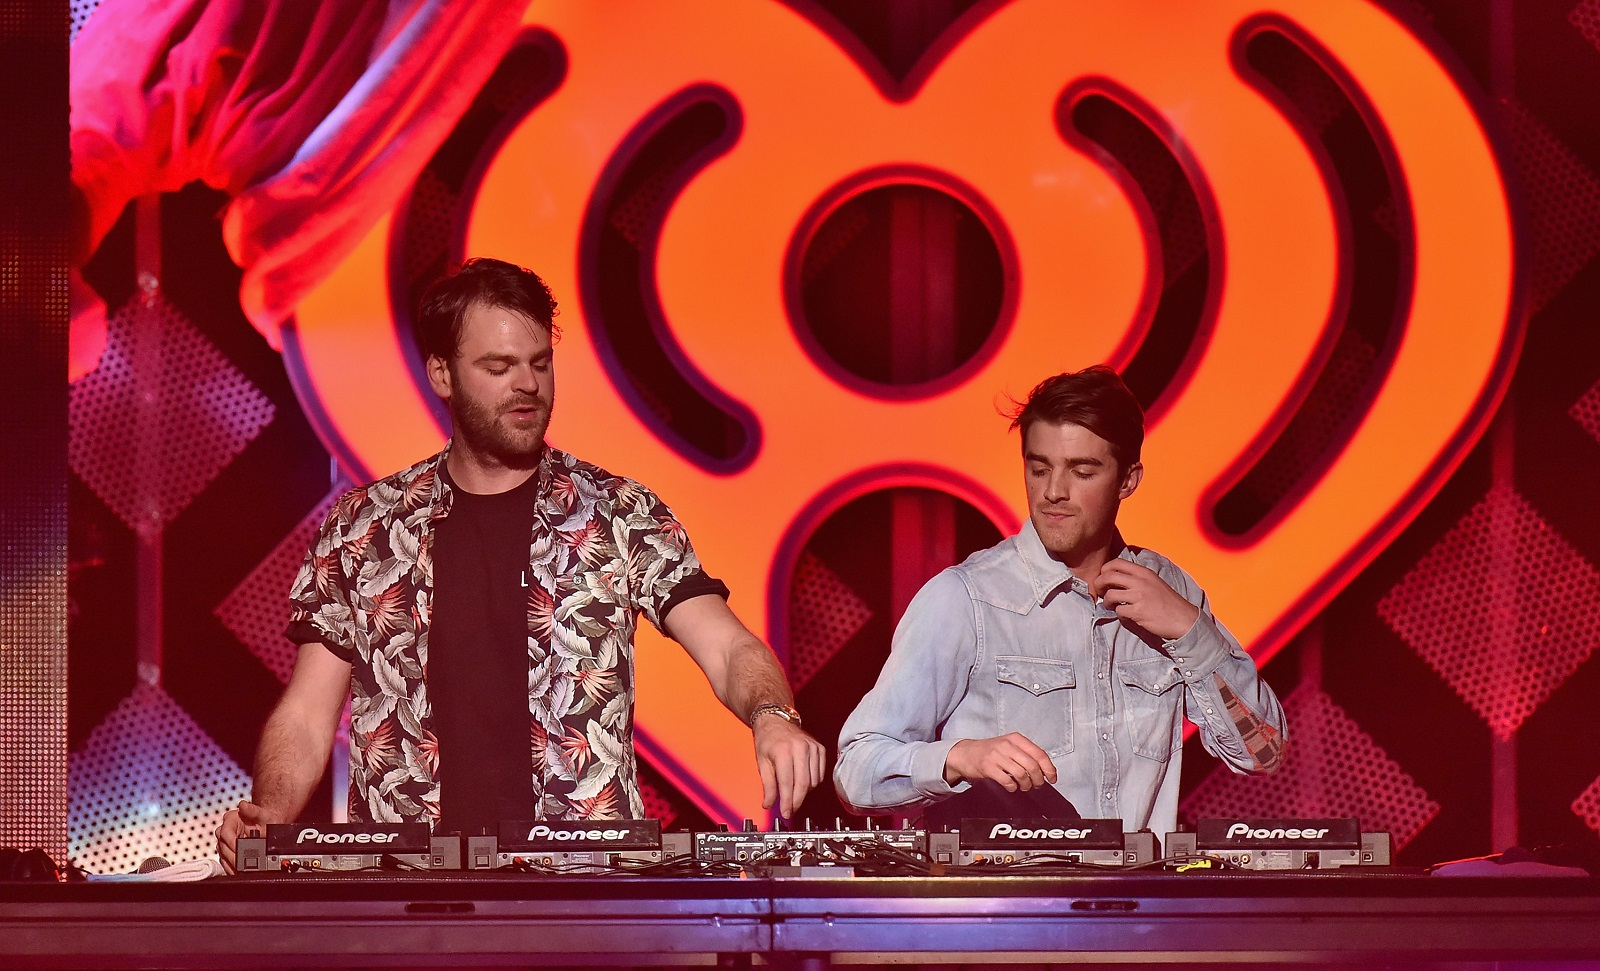 Alex Pall, left, and Andrew Taggart of The Chainsmokers will headline Kissmas Bash on Dec. 15. (Getty Images)